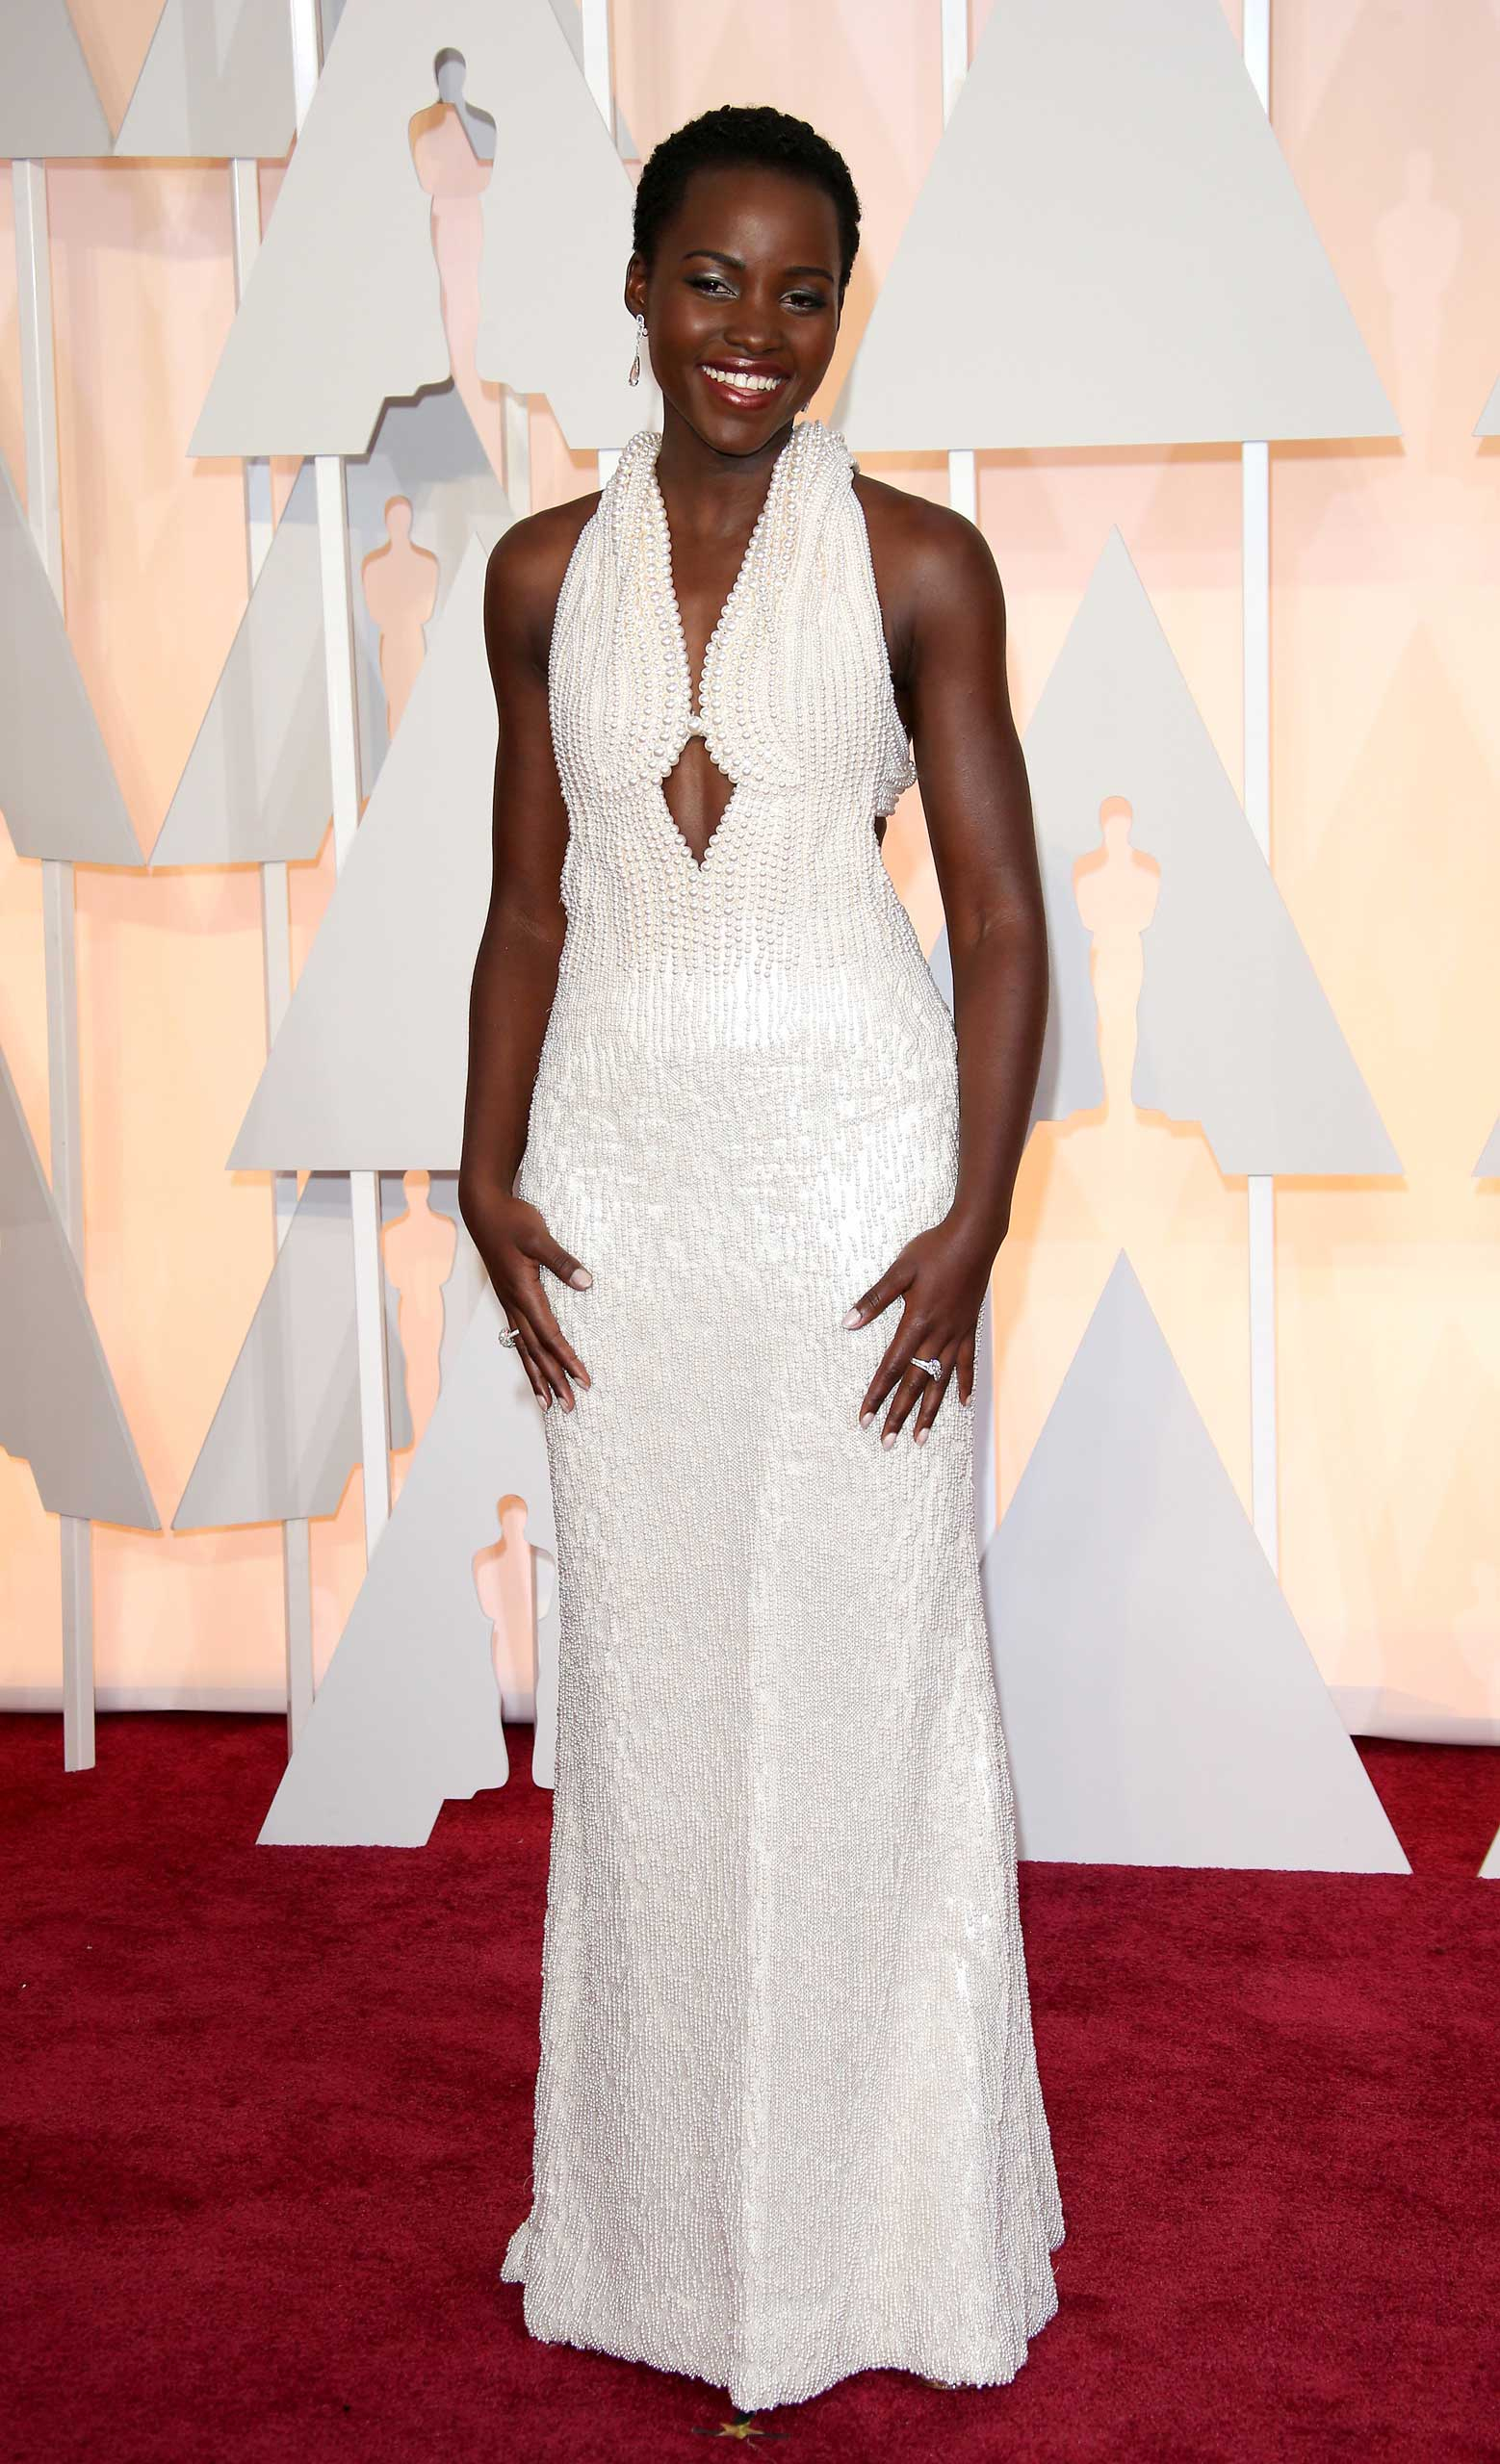 Lupita Nyong'o at the 87th Annual Academy Awards on Feb. 22, 2015 in Los Angeles